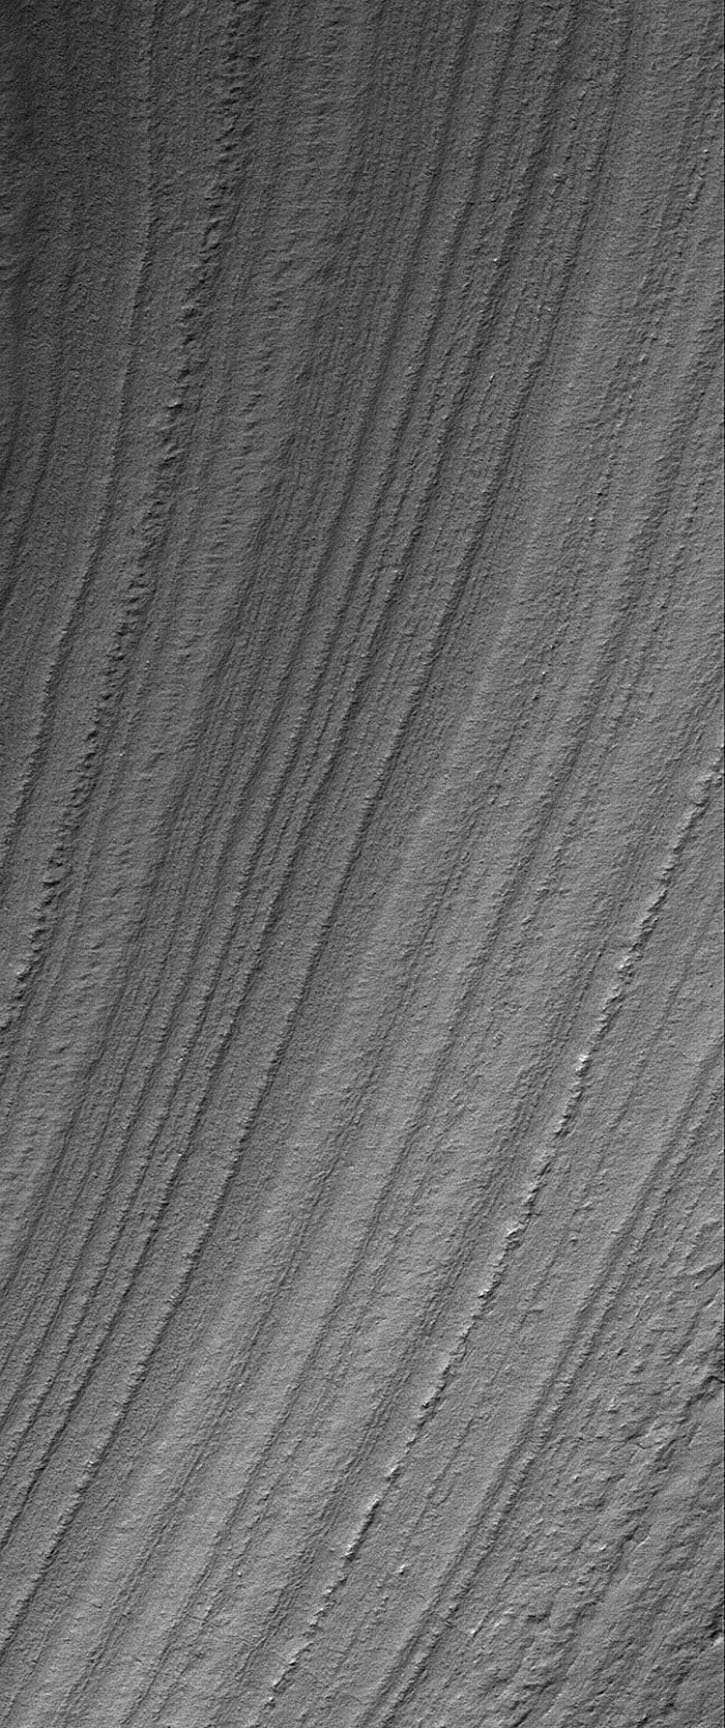 NASA's Mars Global Surveyor shows a mid-summer view of layered terrain in the south polar region of Mars.